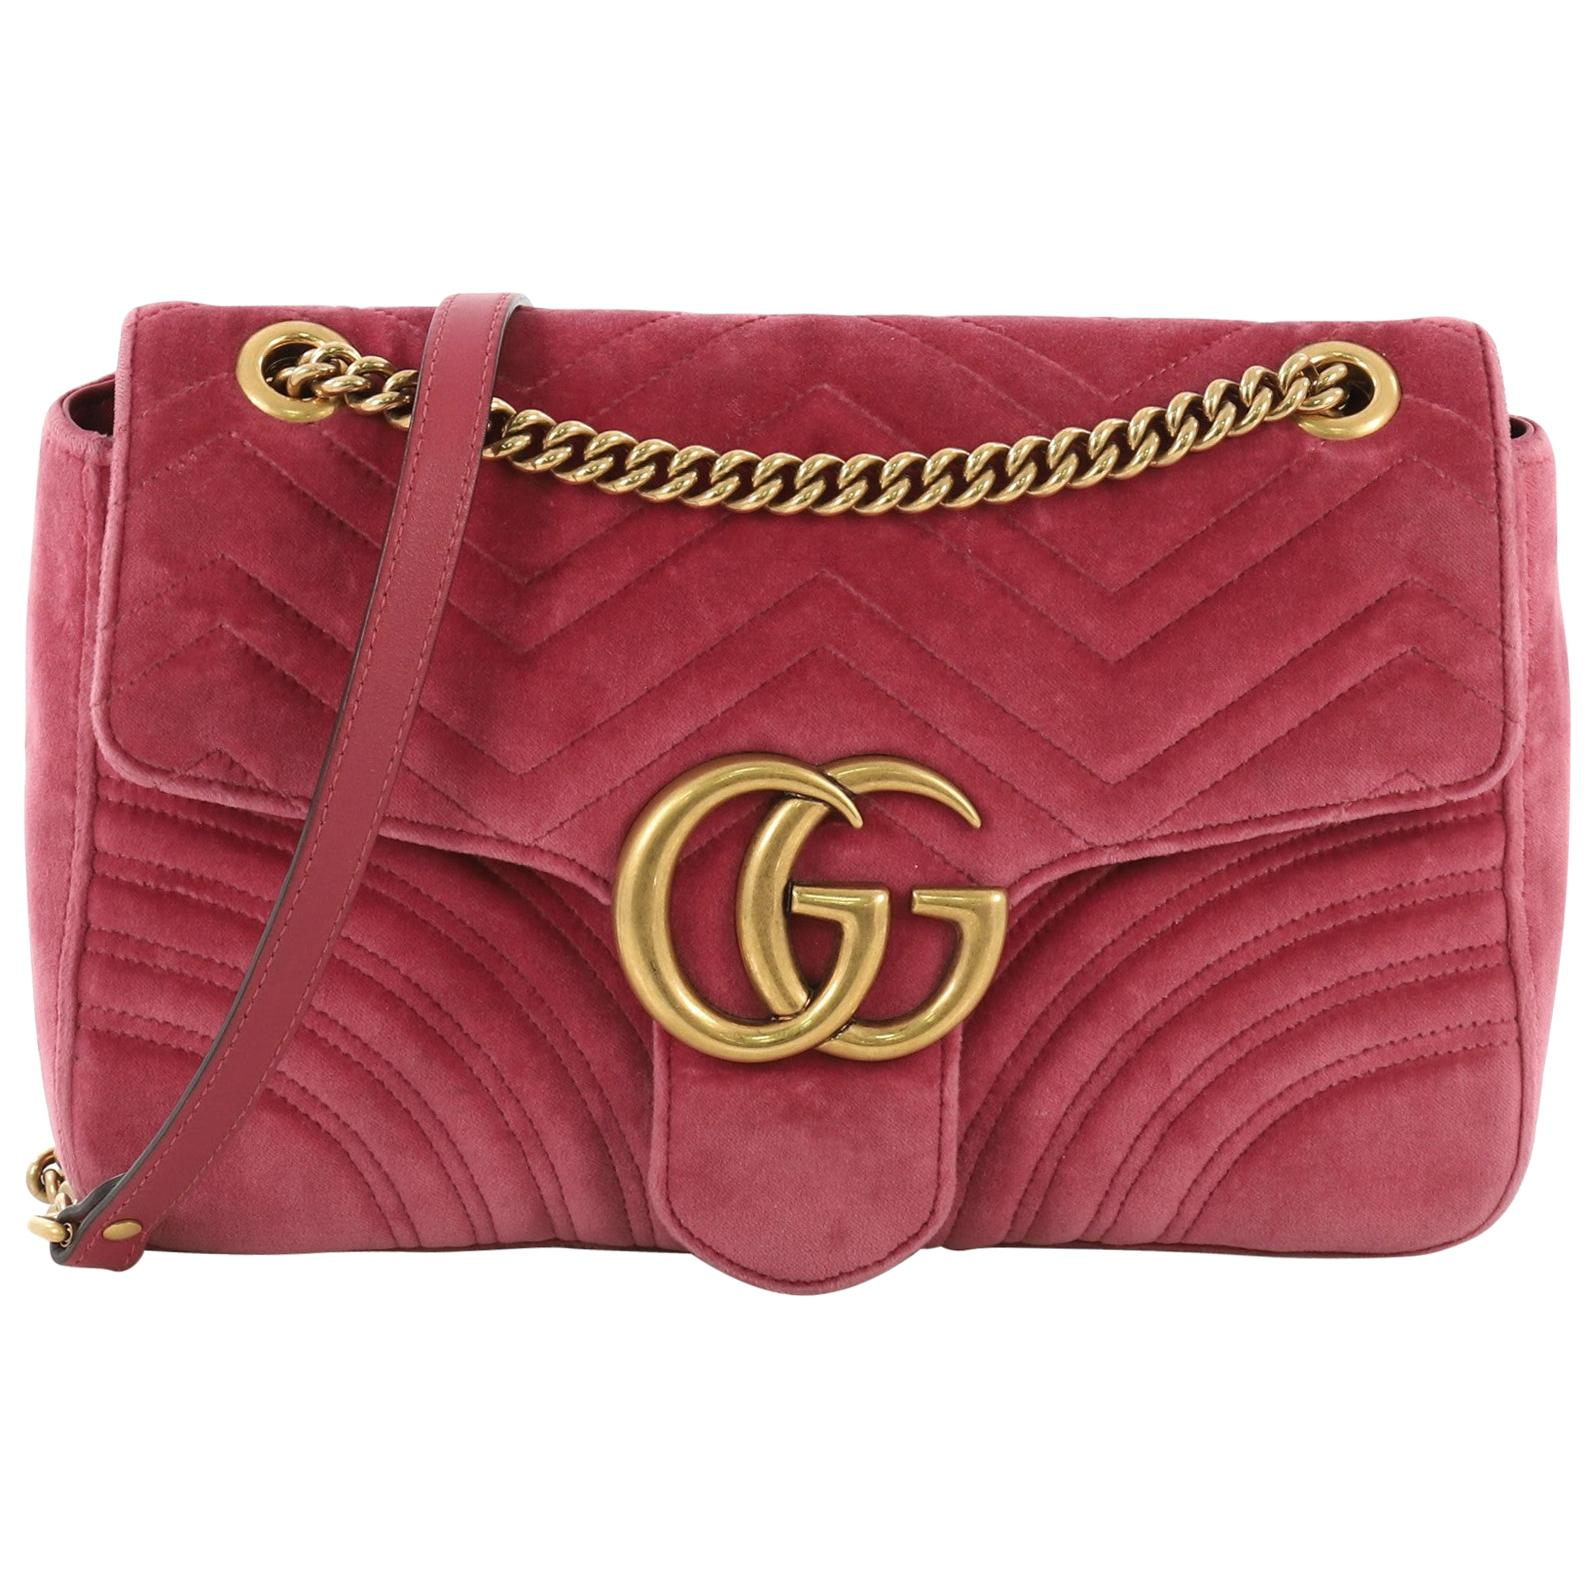 9912a19db27494 Gucci Logo Bags - 271 For Sale on 1stdibs